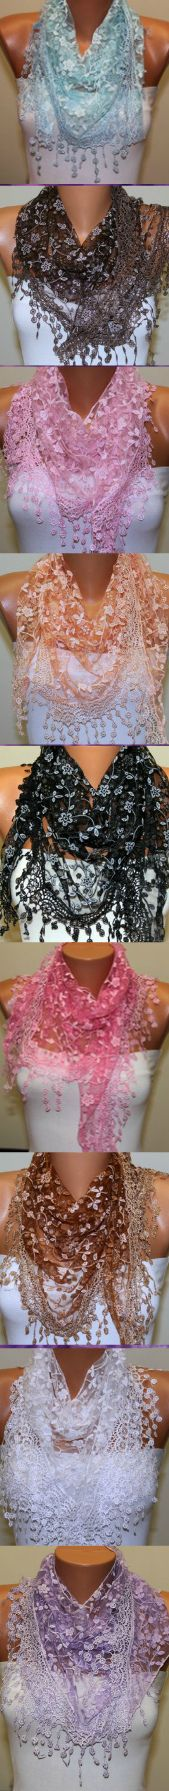 FATWOMAN (Free Scarf + Express Shipping) $19.00